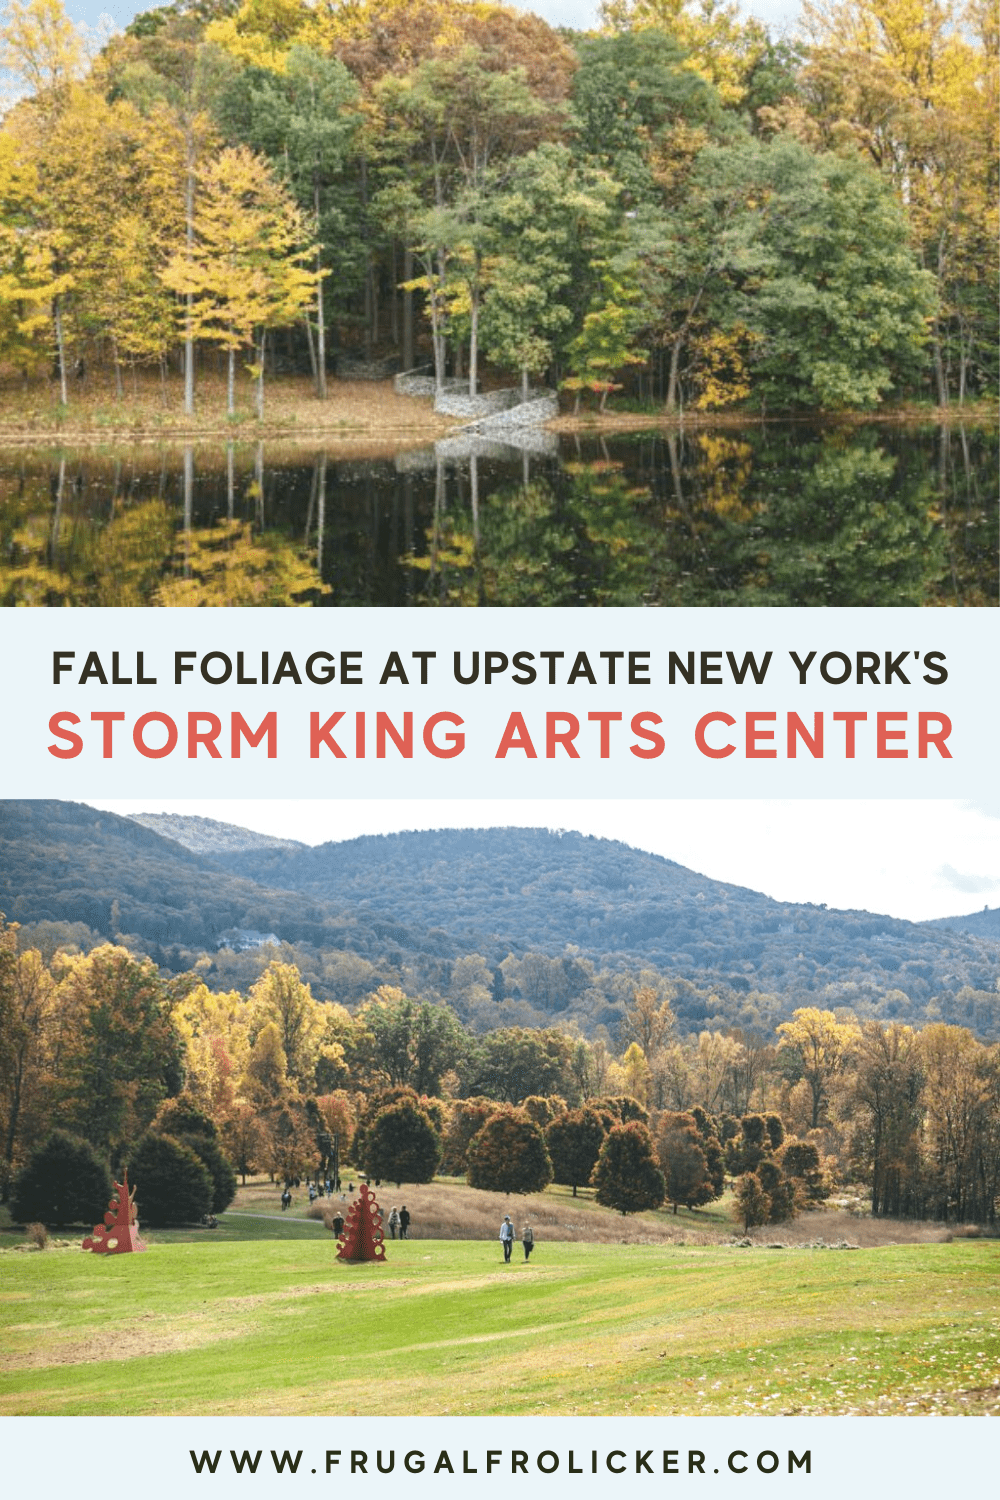 Fall Foliage at the Storm King Art Center in Upstate New York